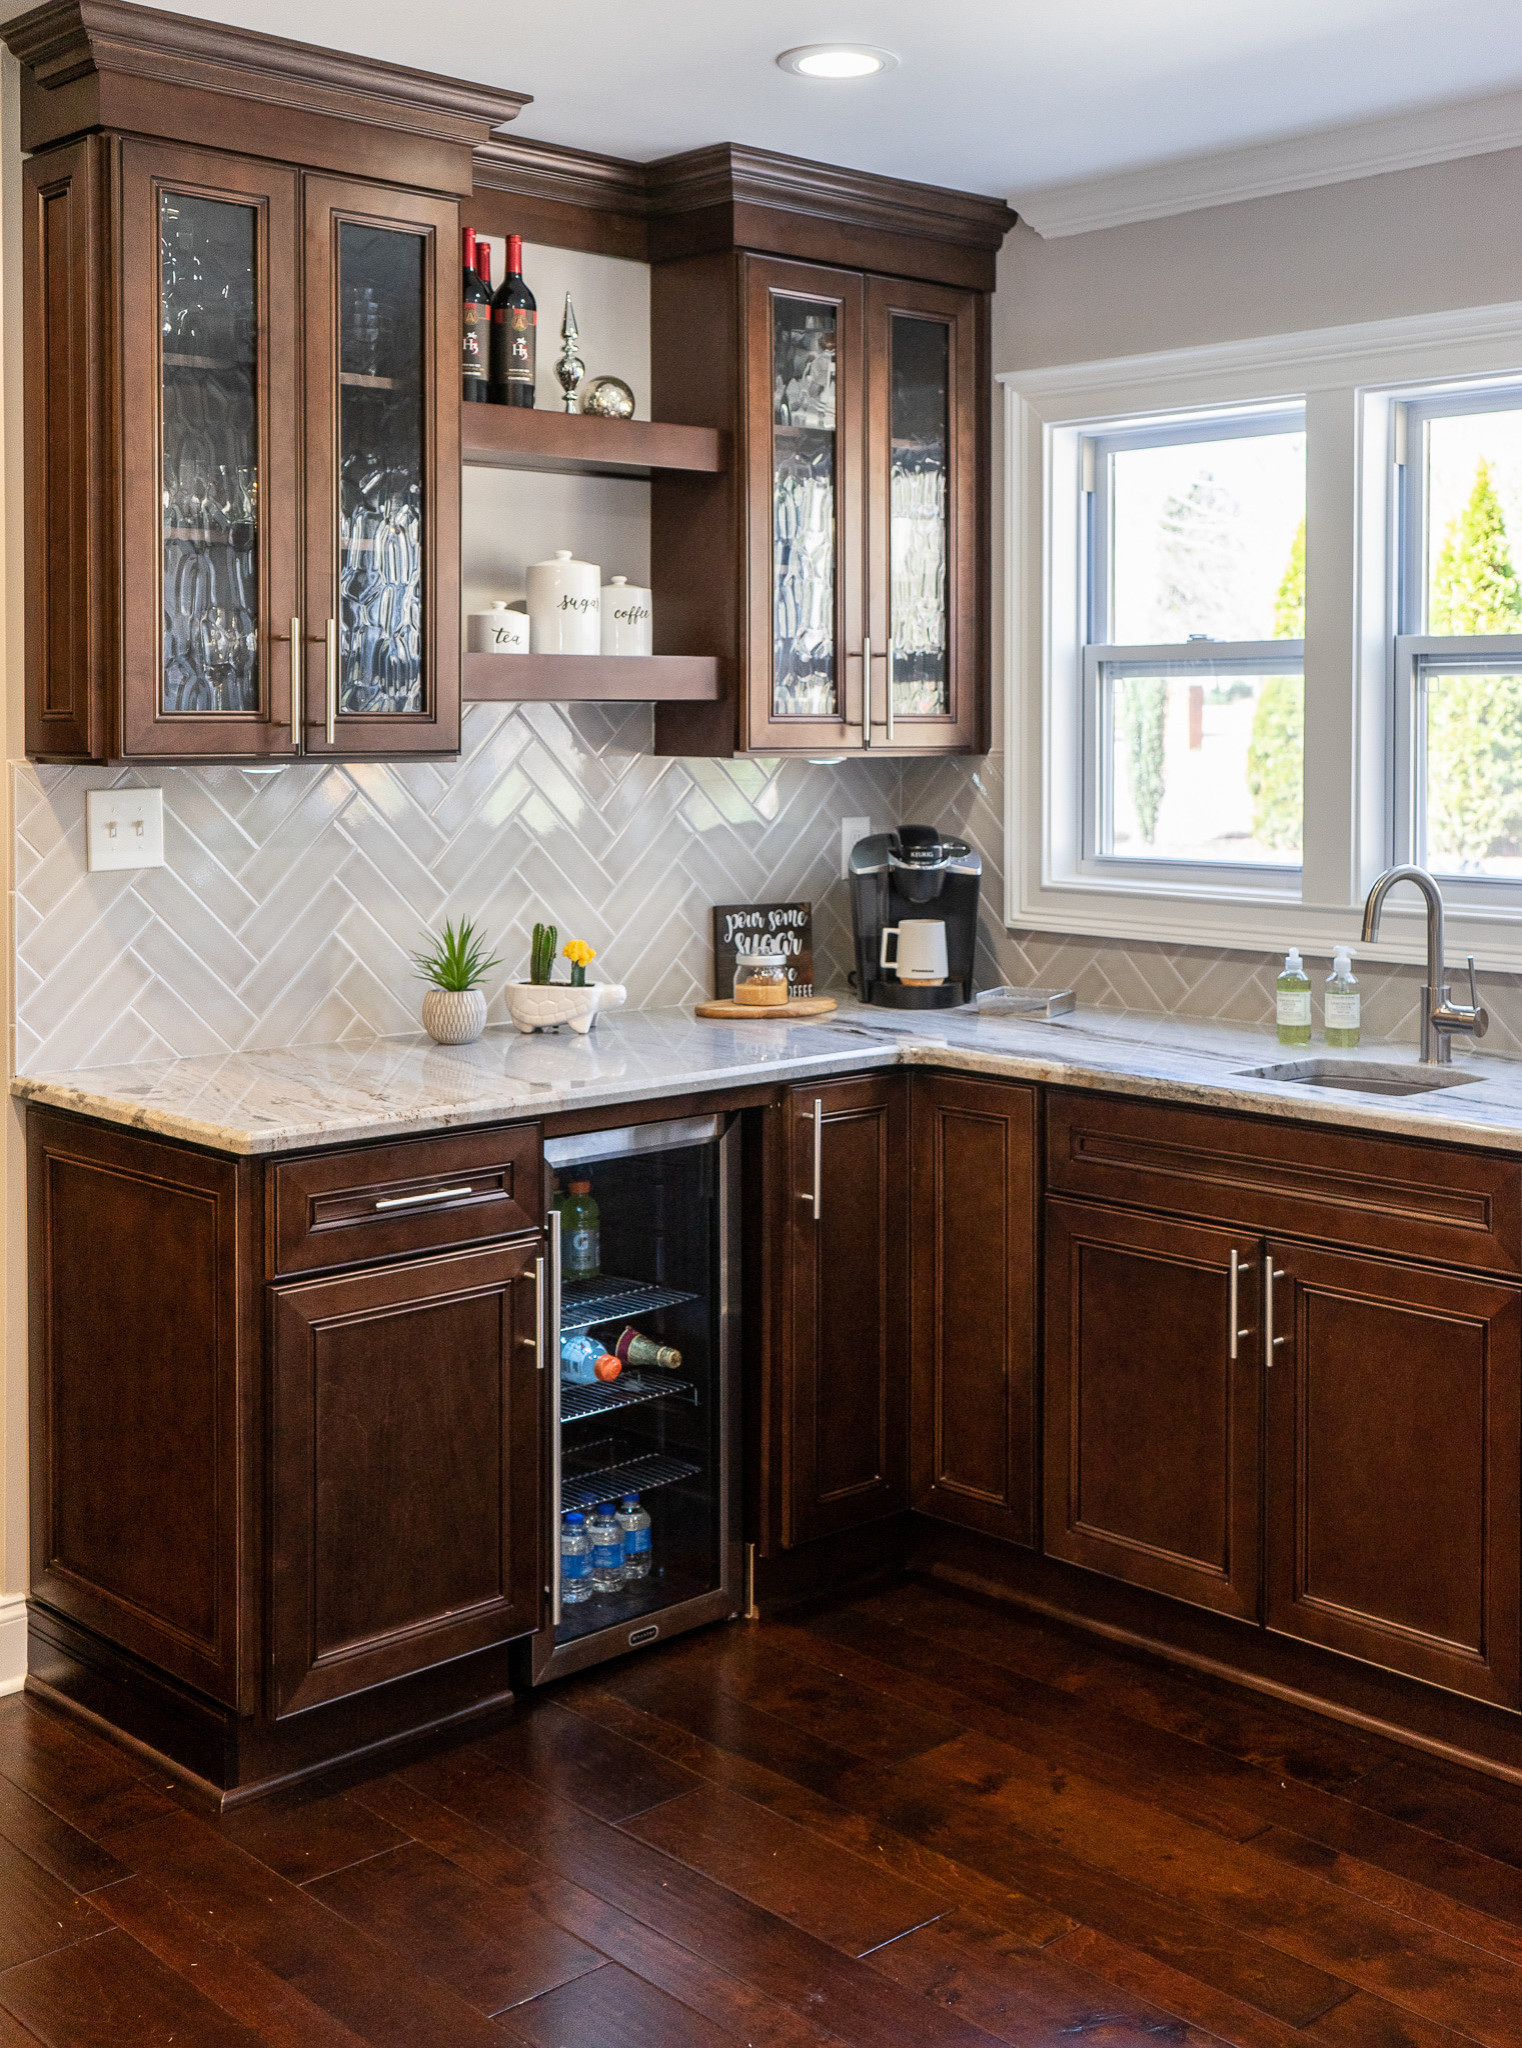 75 Beautiful Kitchen With Brown Cabinets Pictures Ideas April 2021 Houzz